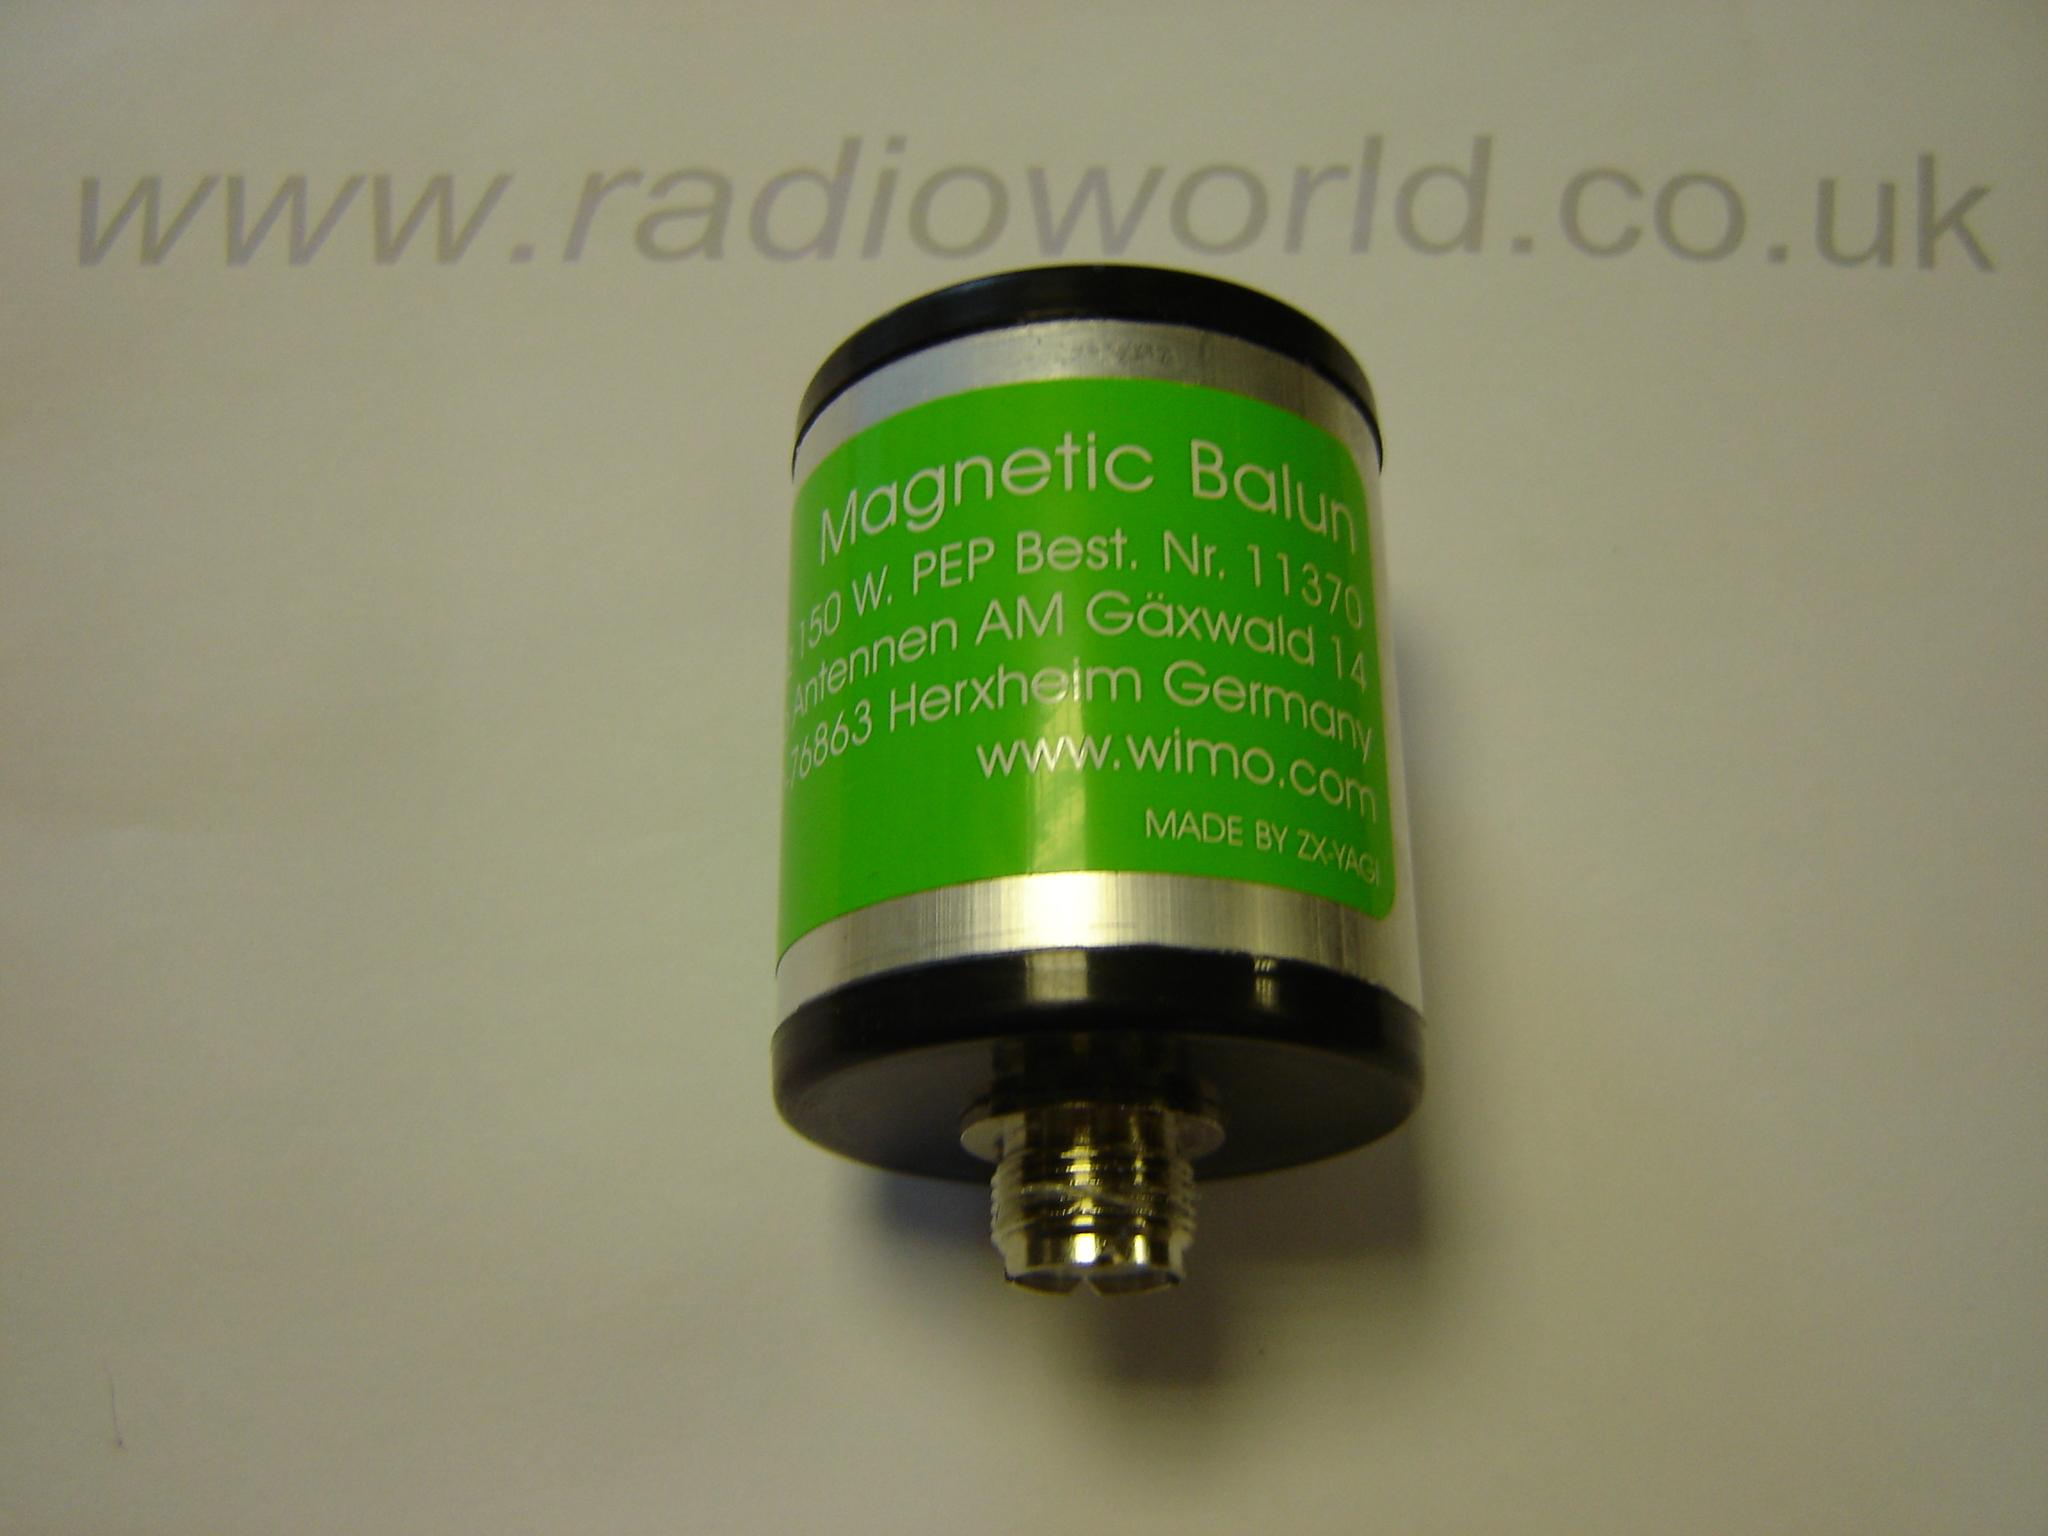 MTFT-INT Magnetic Balun for internal use with Wire Antennas